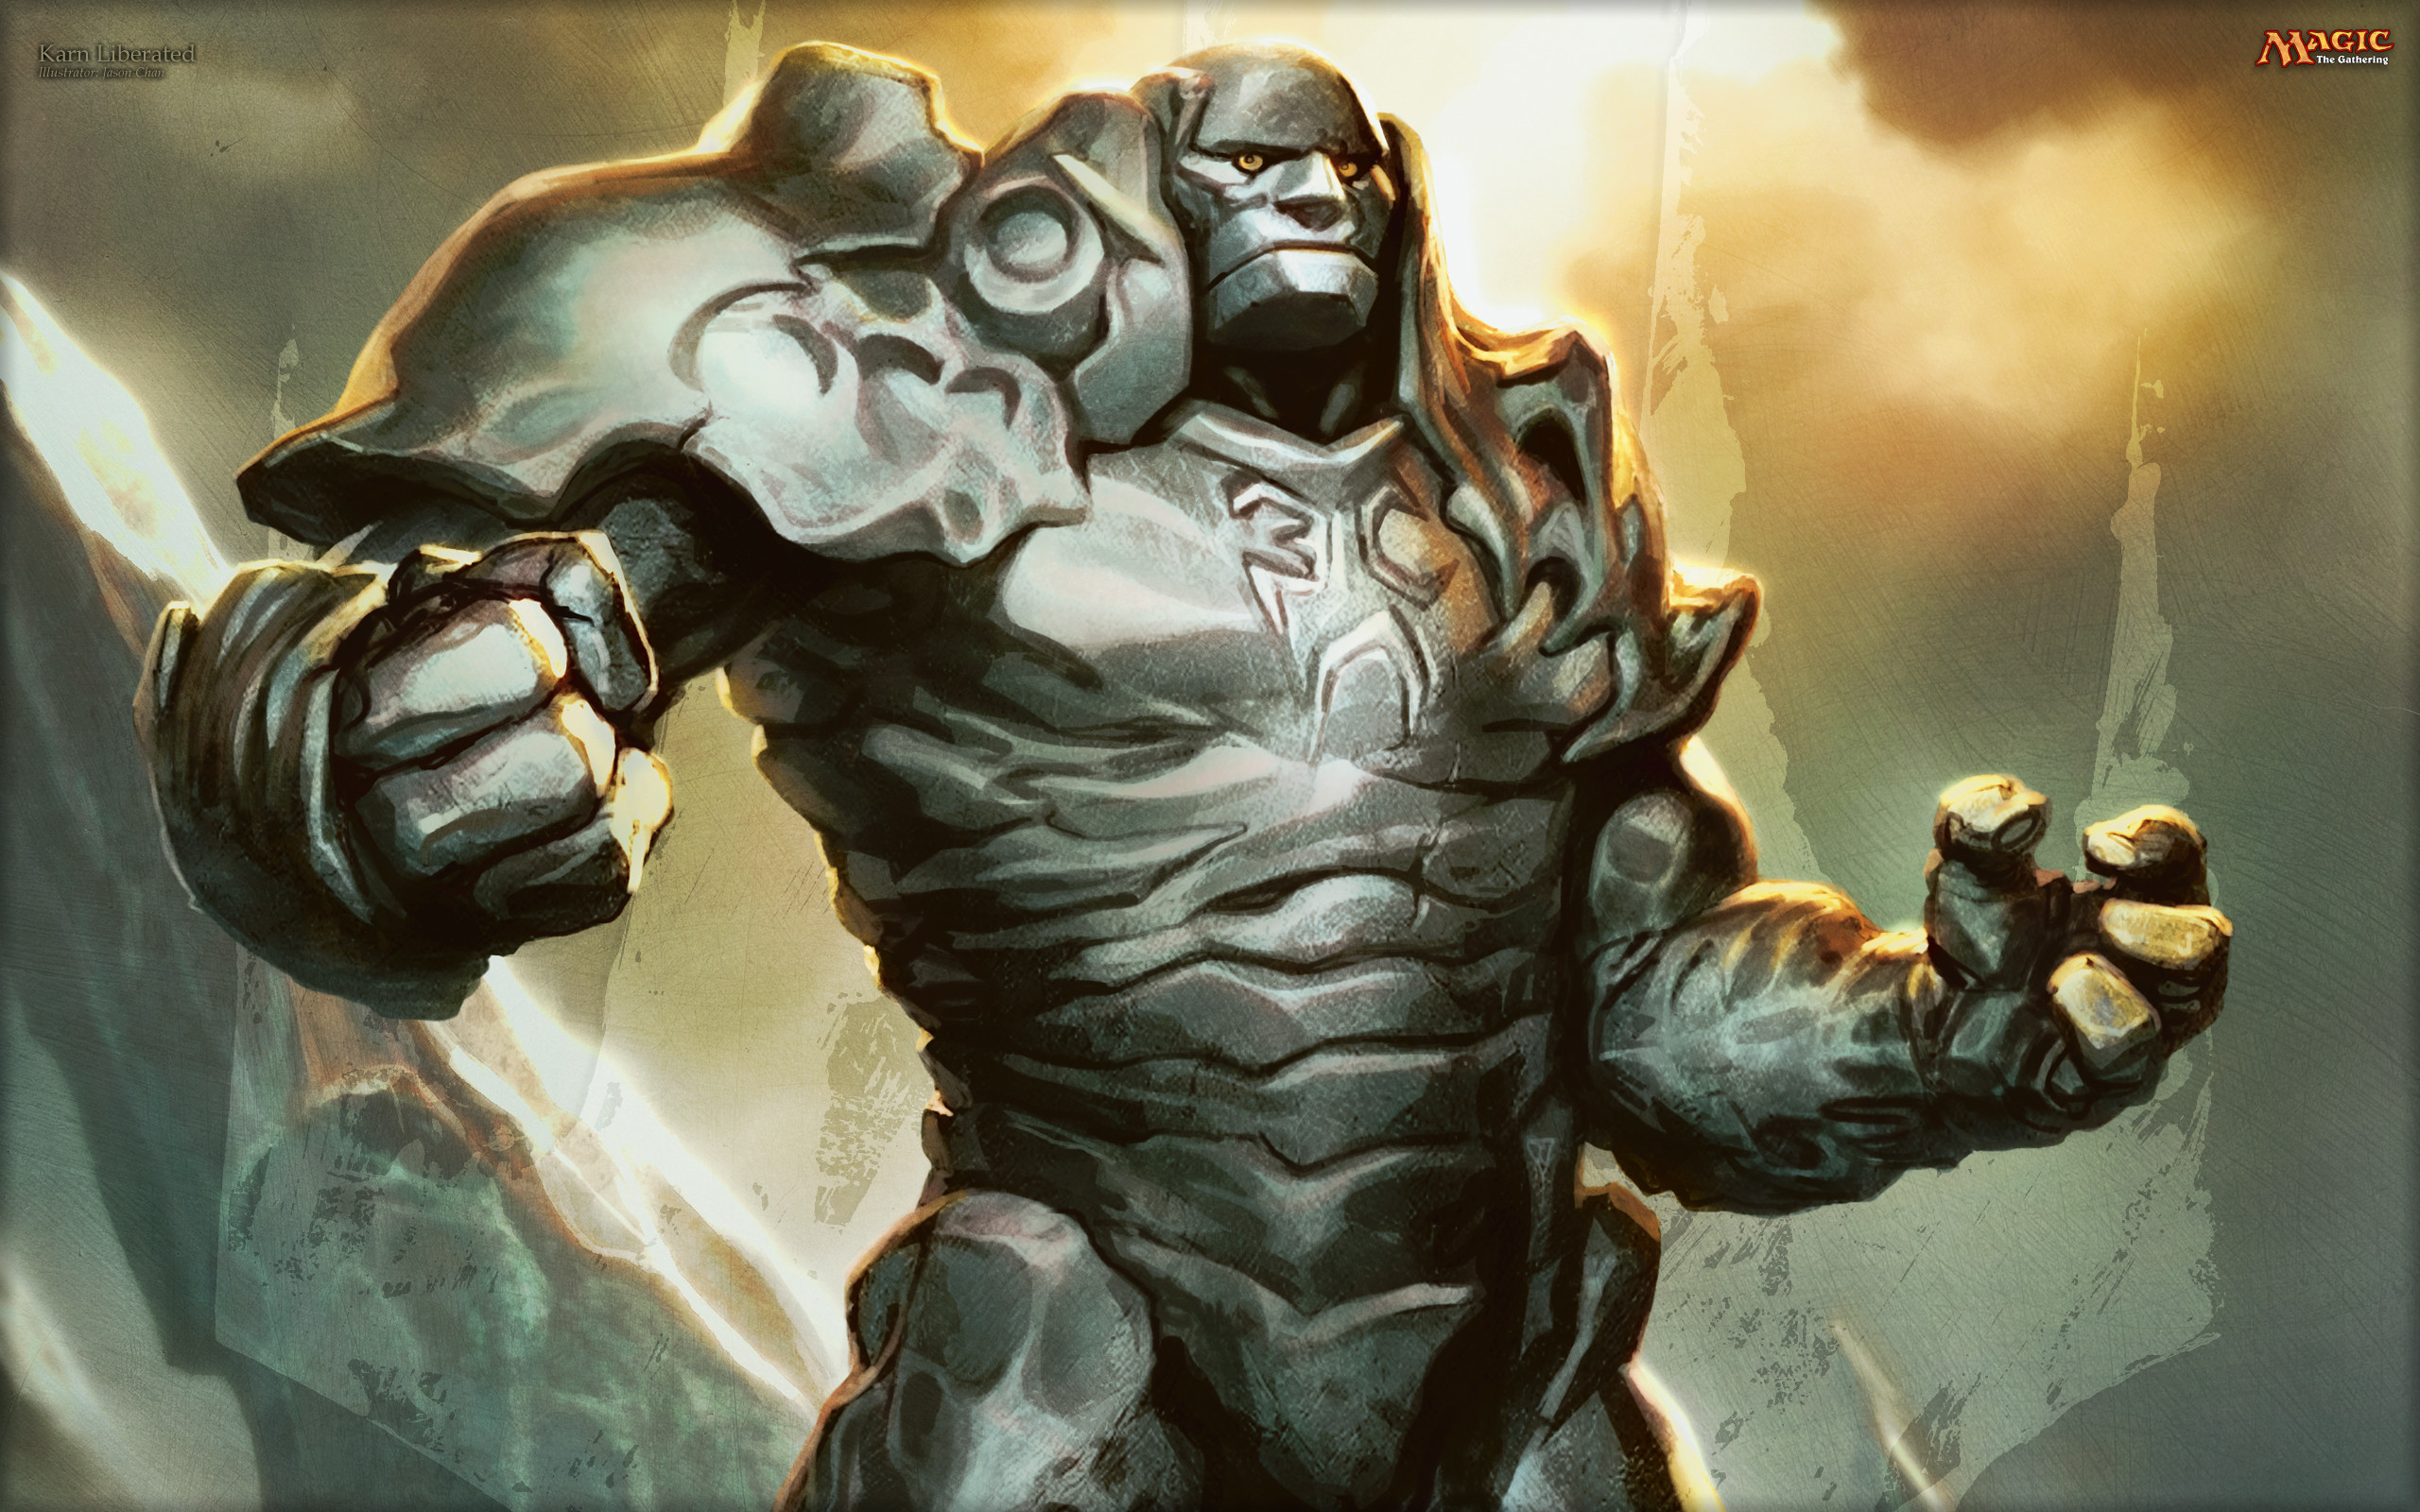 2560x1600 Wallpaper Of The Week Karn Liberated Daily Mtg Magic The